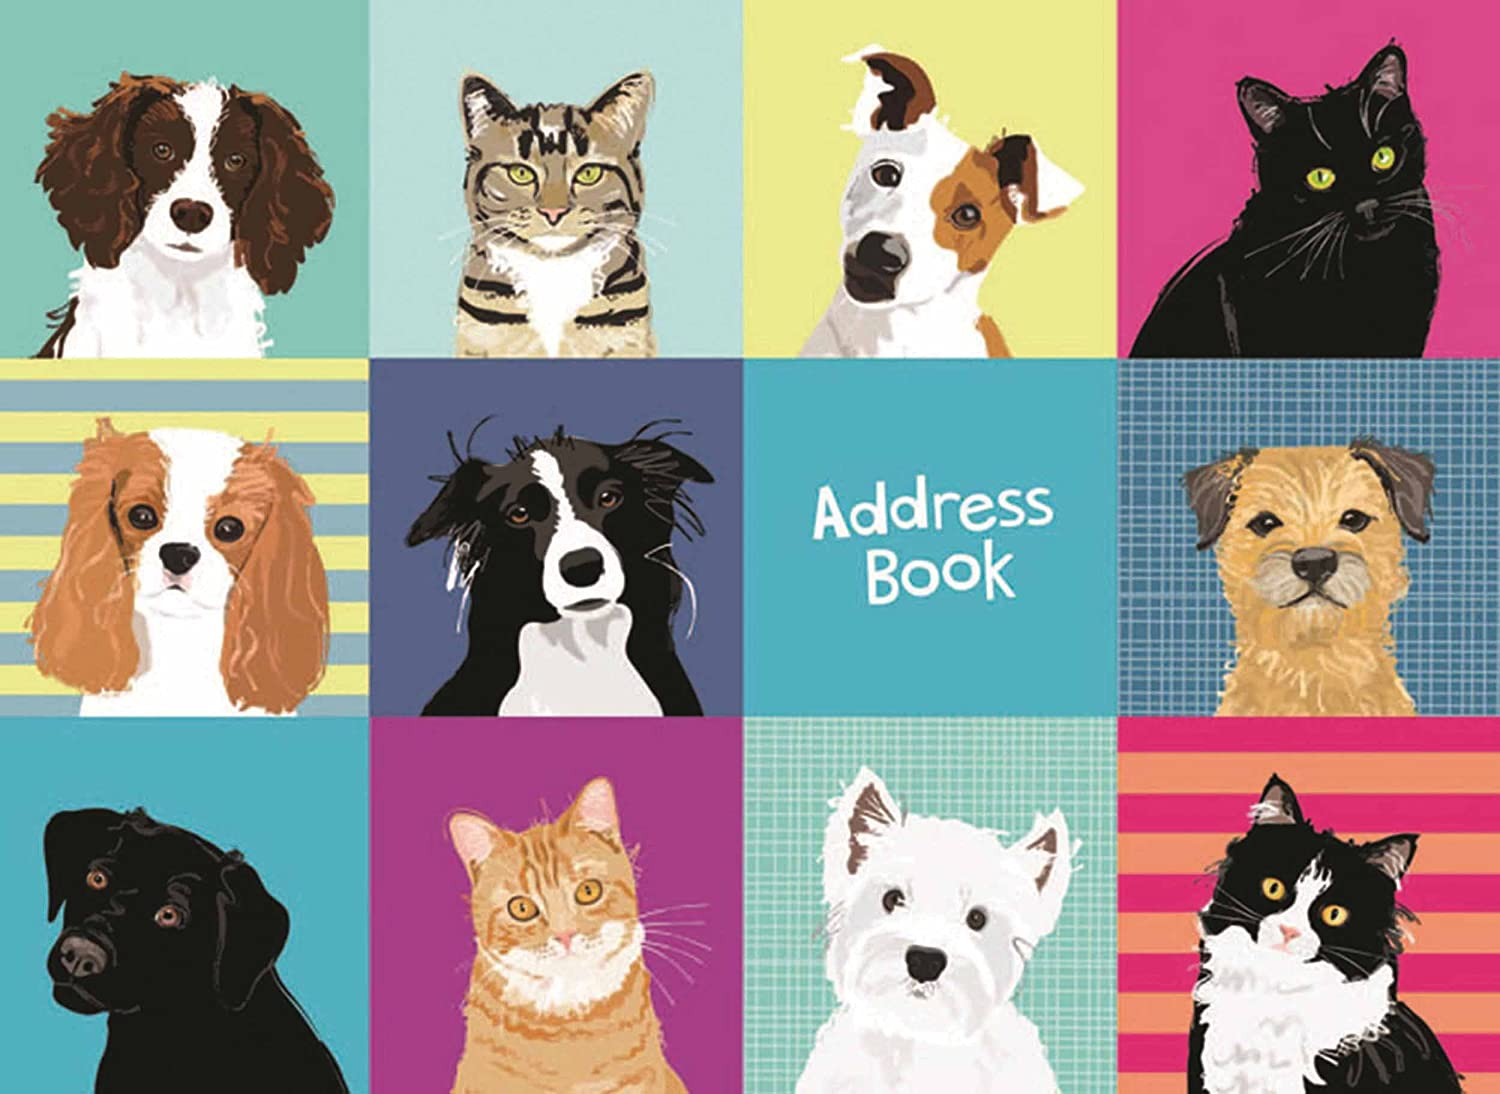 Waggy Tails - Landscape Desk Address Book Otter House Limited